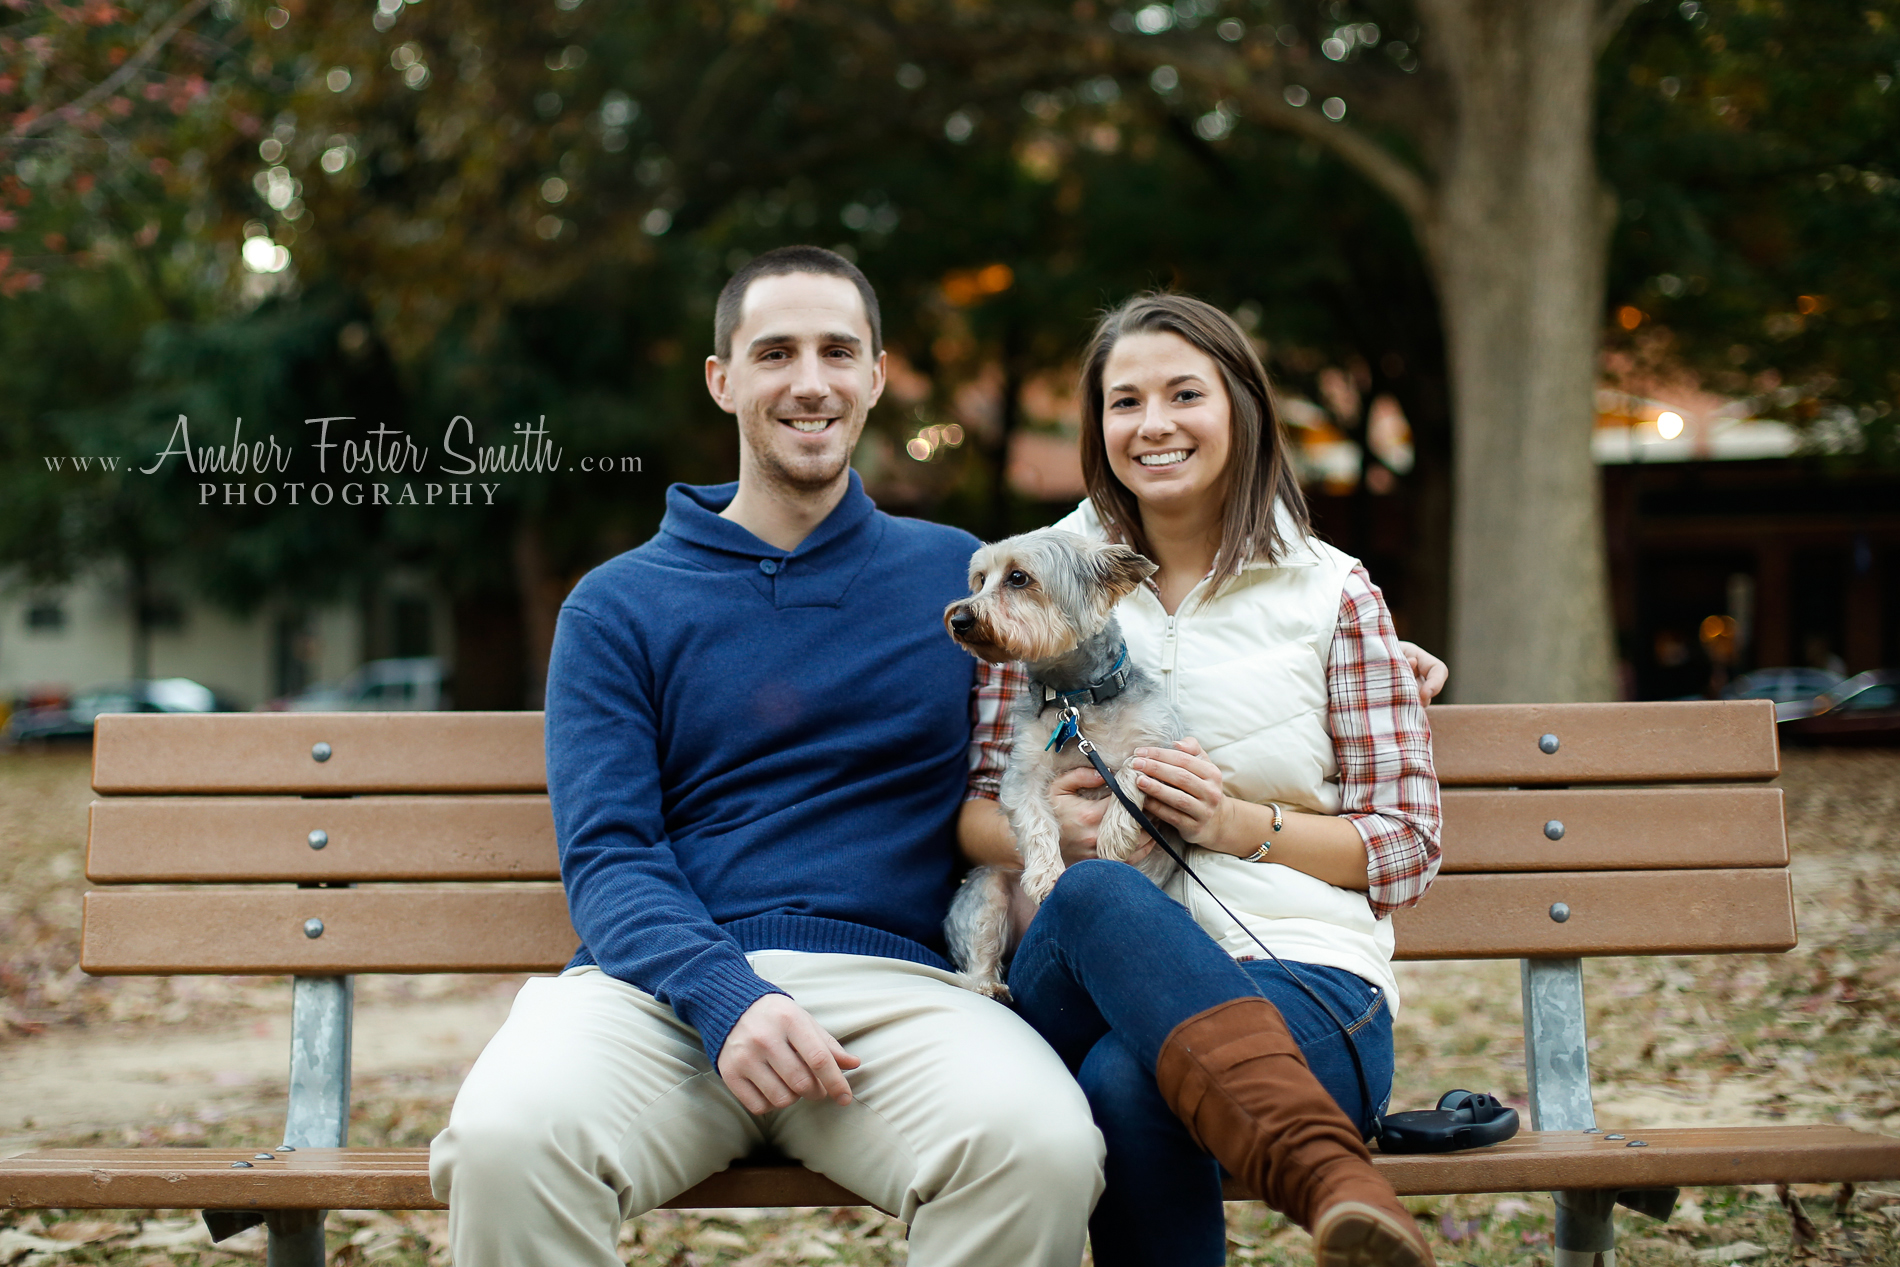 Amber Foster Smith Photography - Holly Springs, Raleigh NC | Raleigh Engagement Photographer